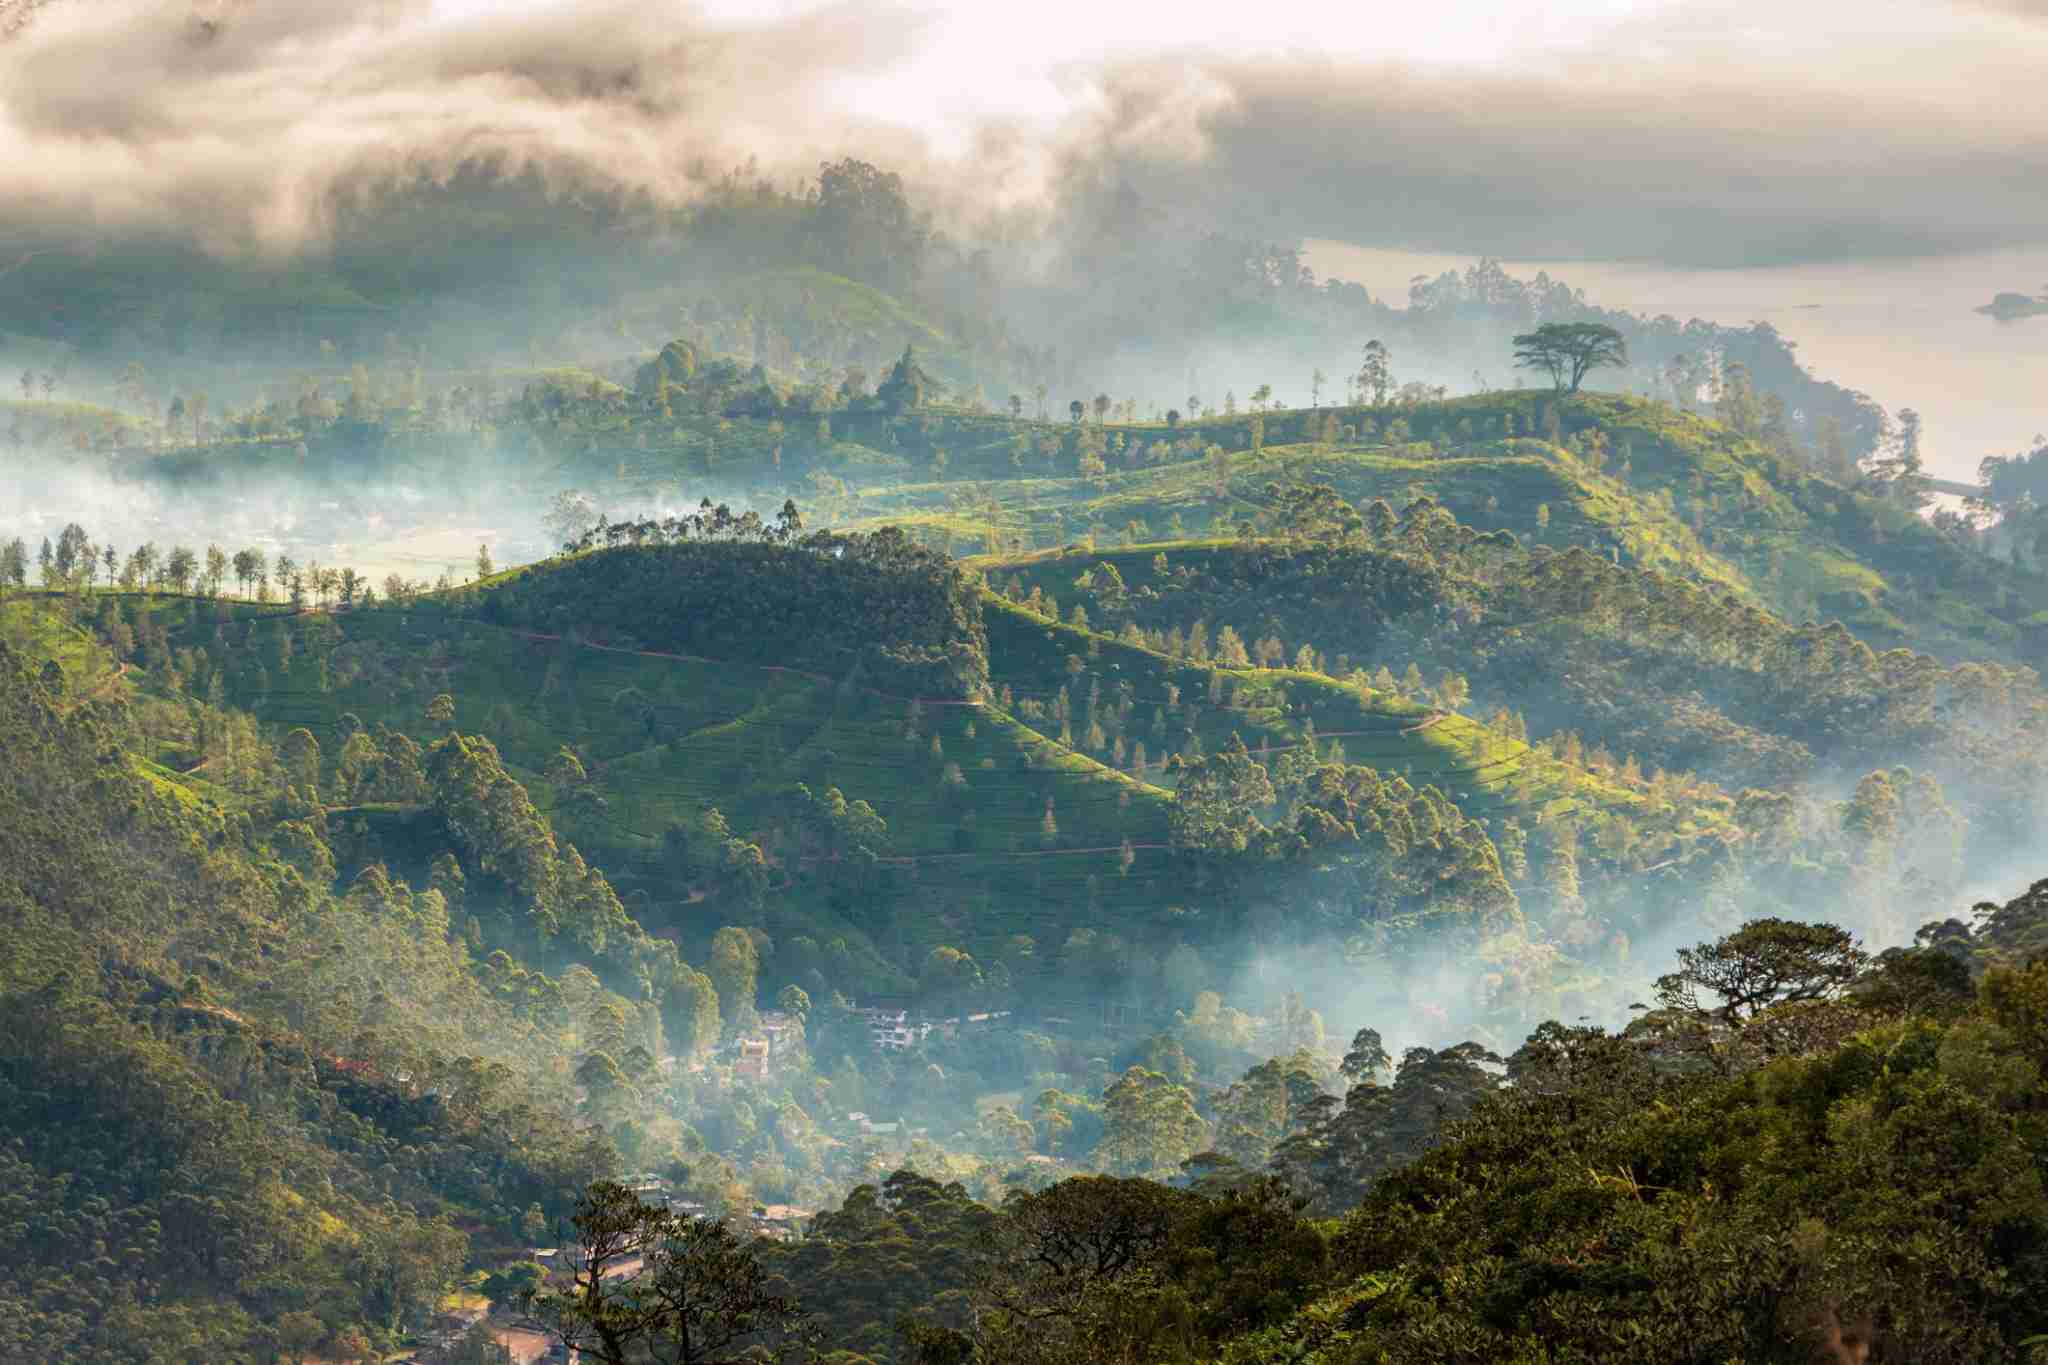 Morning mist over a Sri Lankan tea plantation. Image by Justin Schümann / Getty.